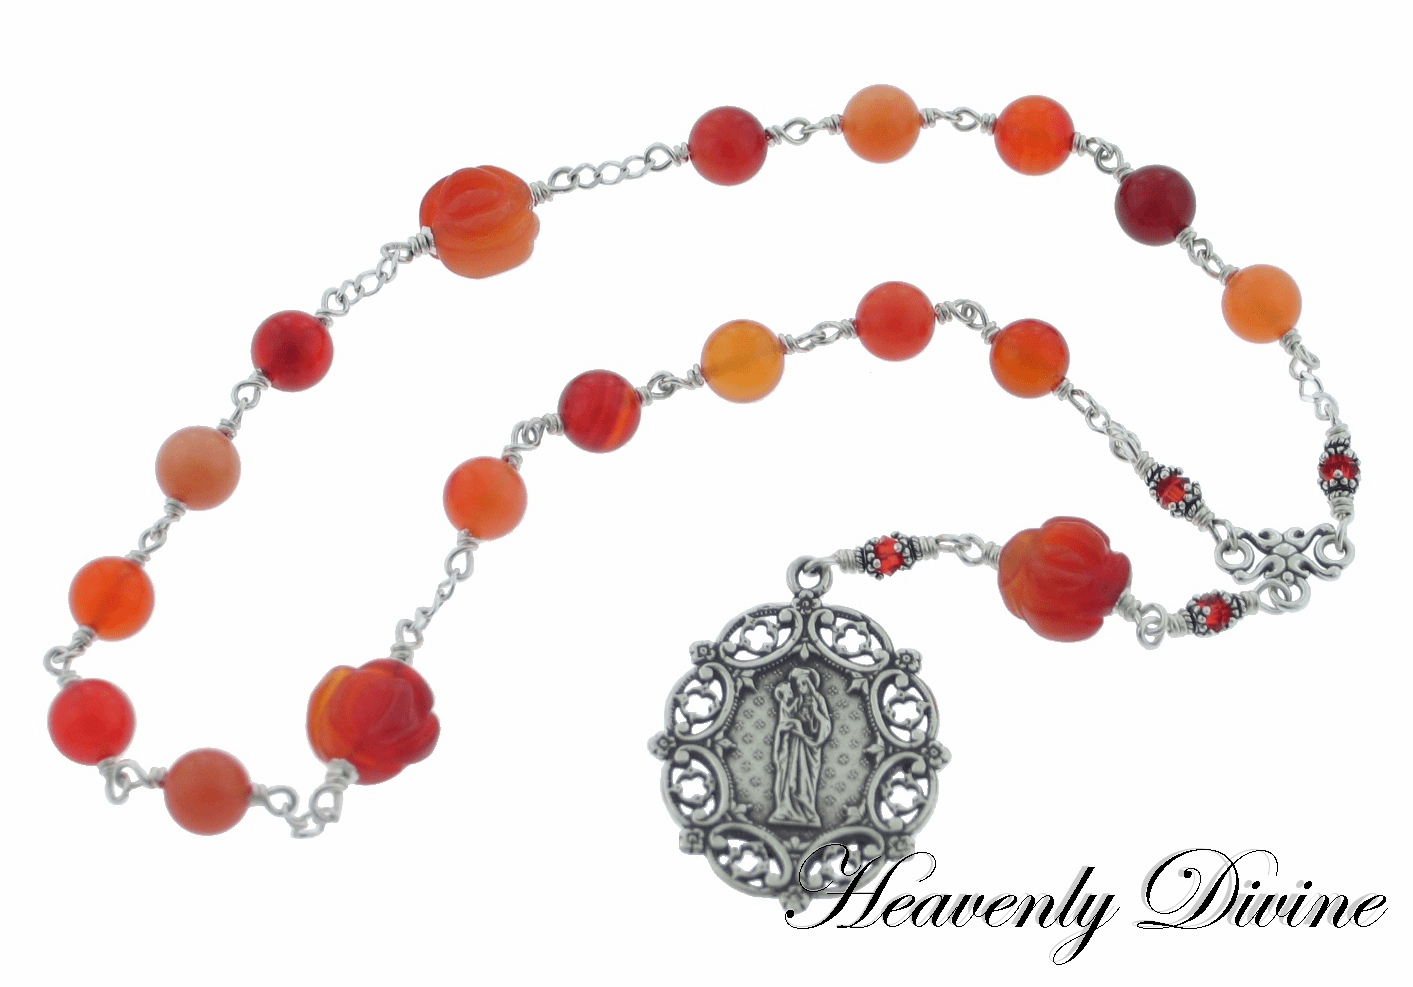 Handmade Wire-Wrapped Carnelian & Agate Sterling St Anne Chaplet by Heavenly Divine